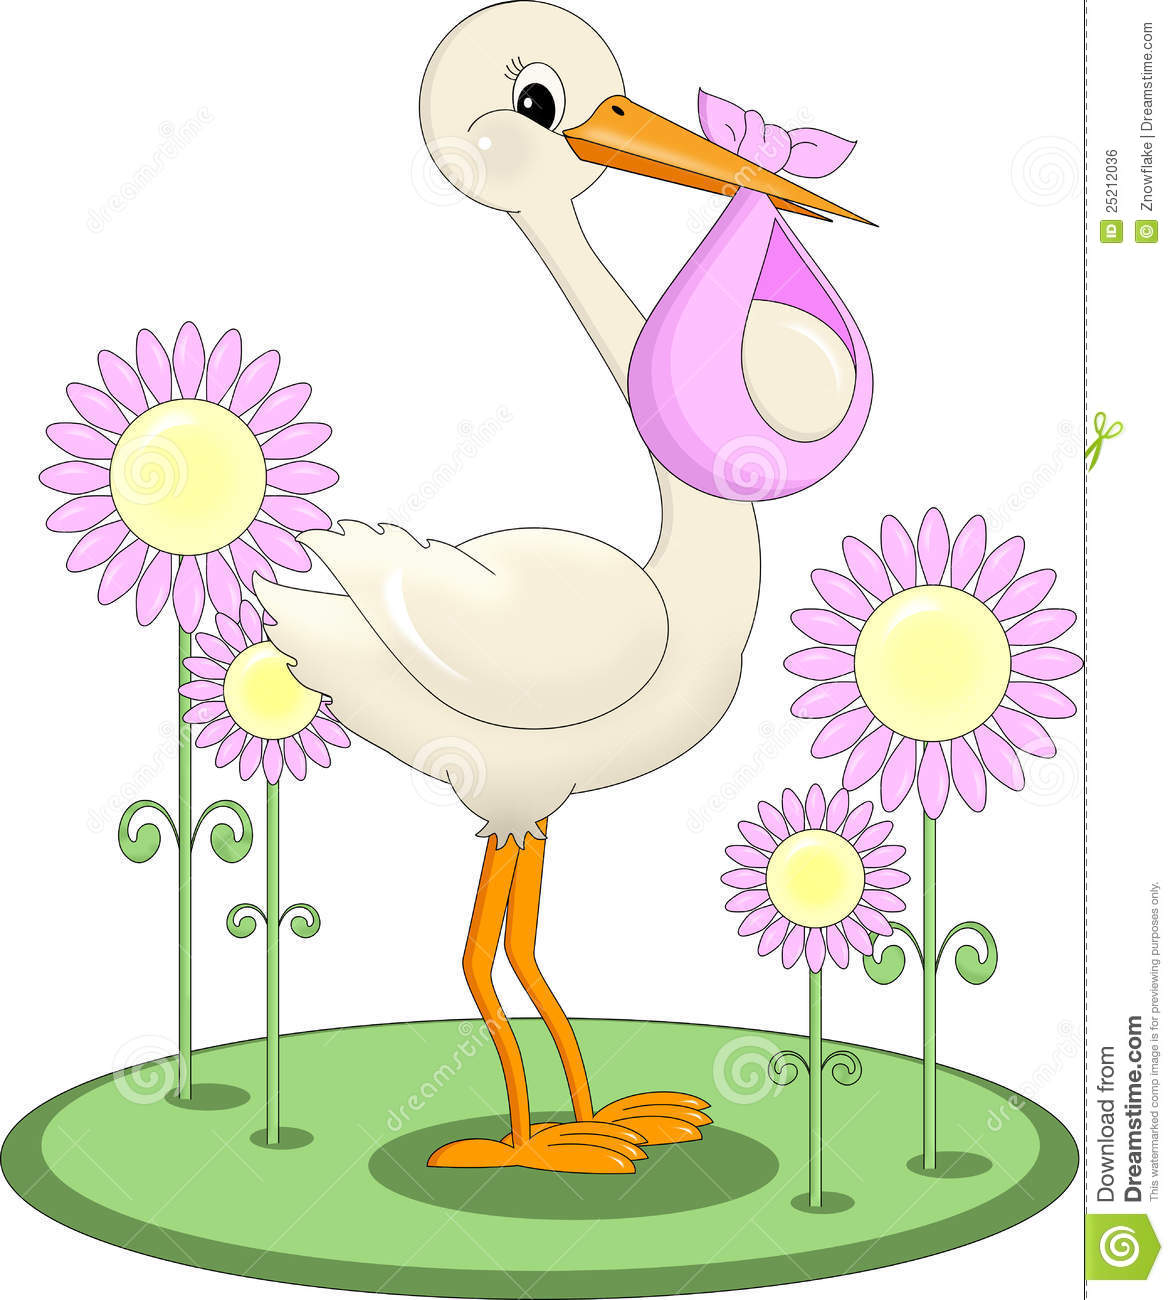 Baby girl stork clipart. Delivering royalty free stock